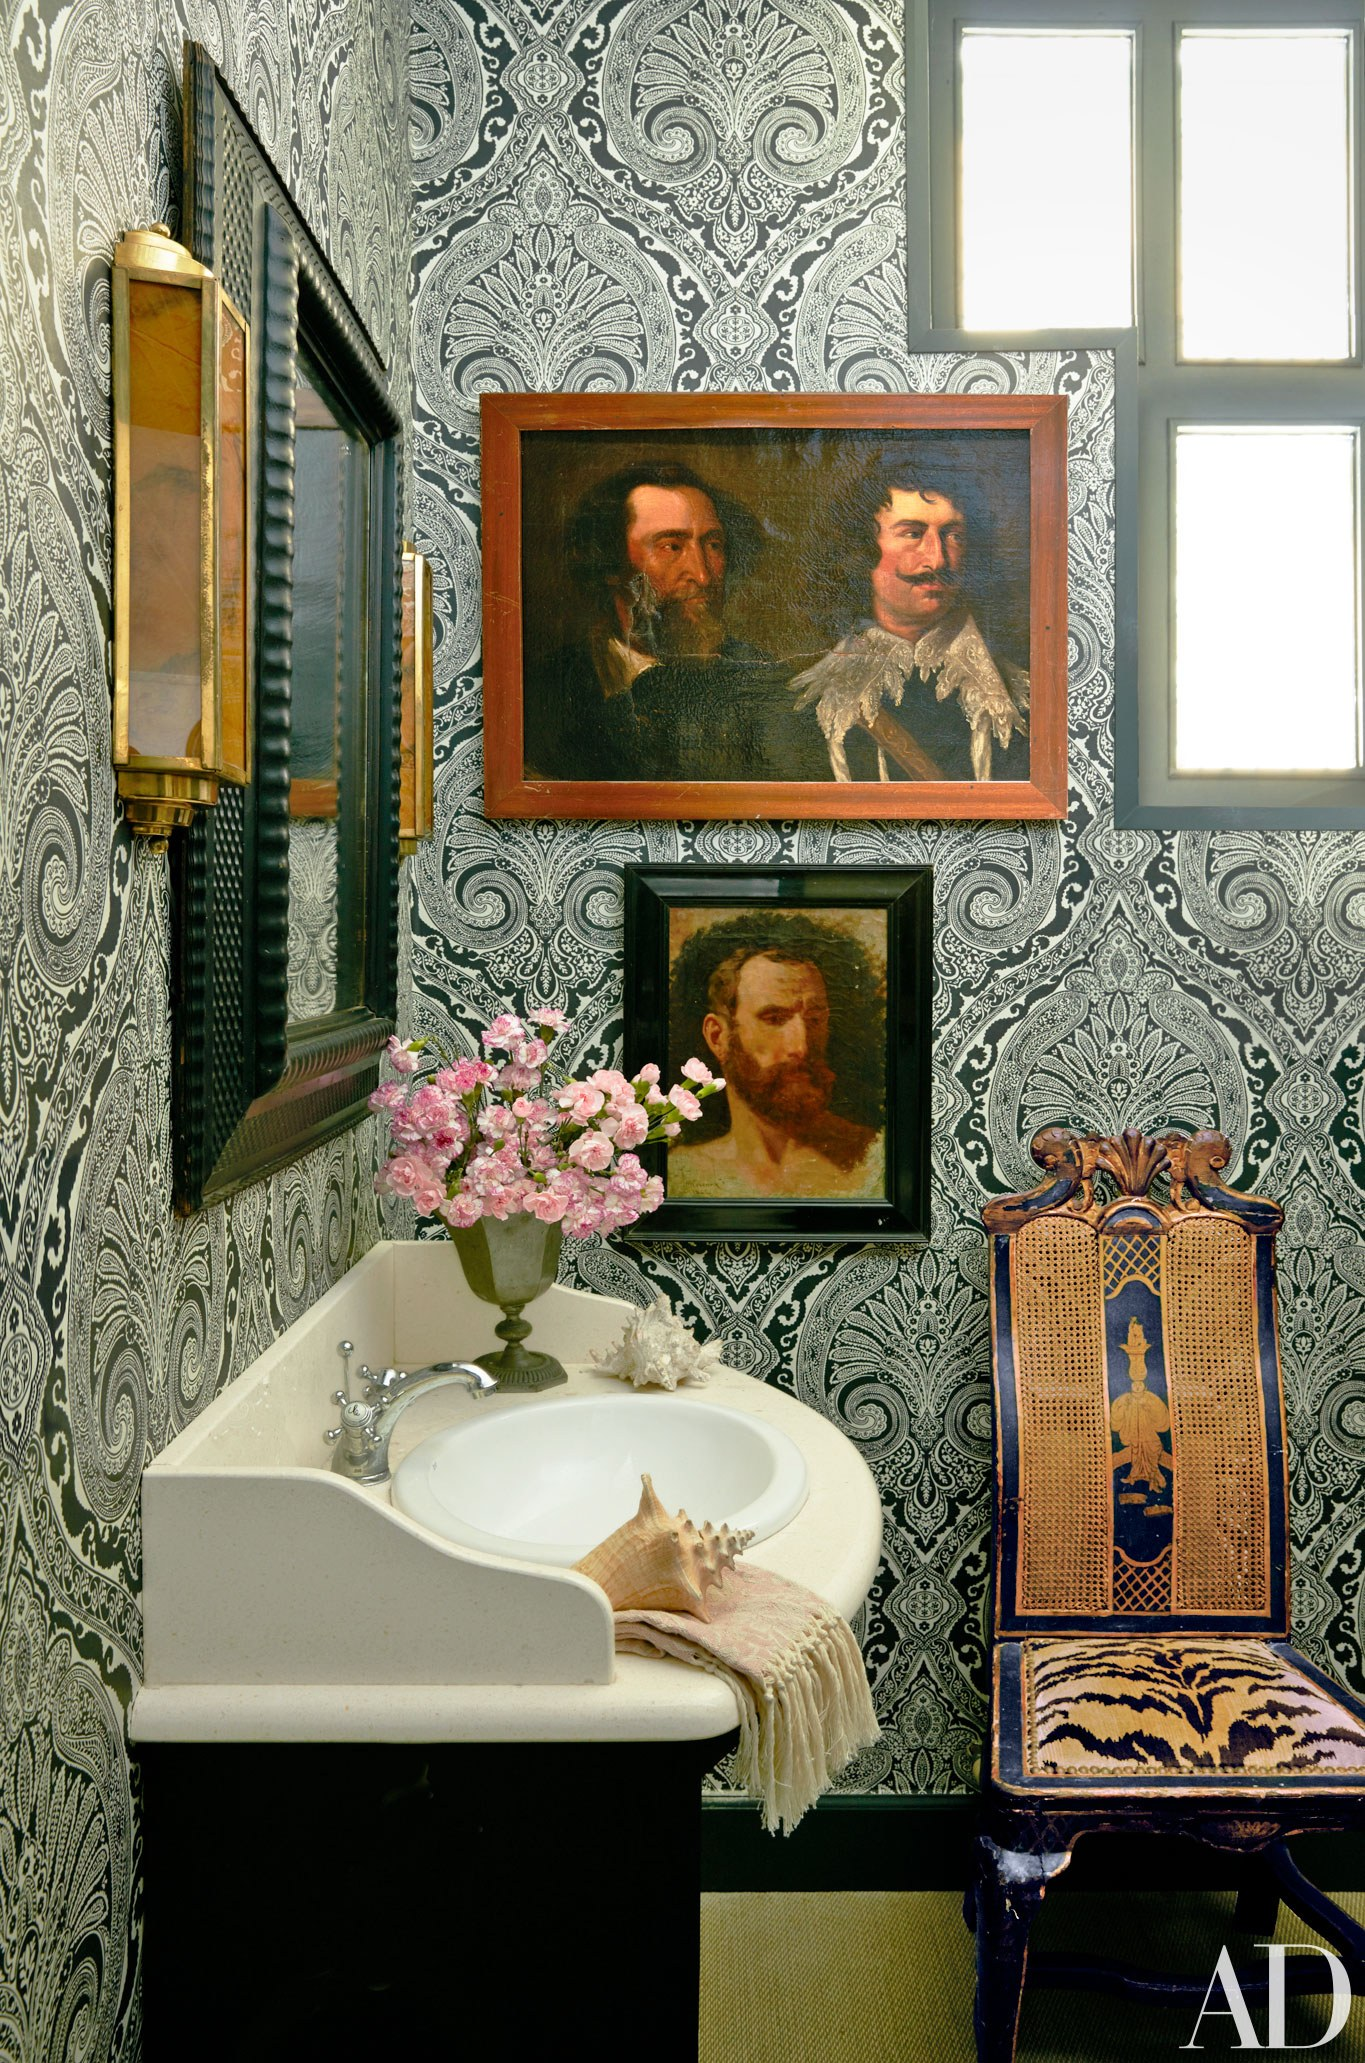 Lorenzo Castillo | The Allure of Antique Portraits | Interiors for Families